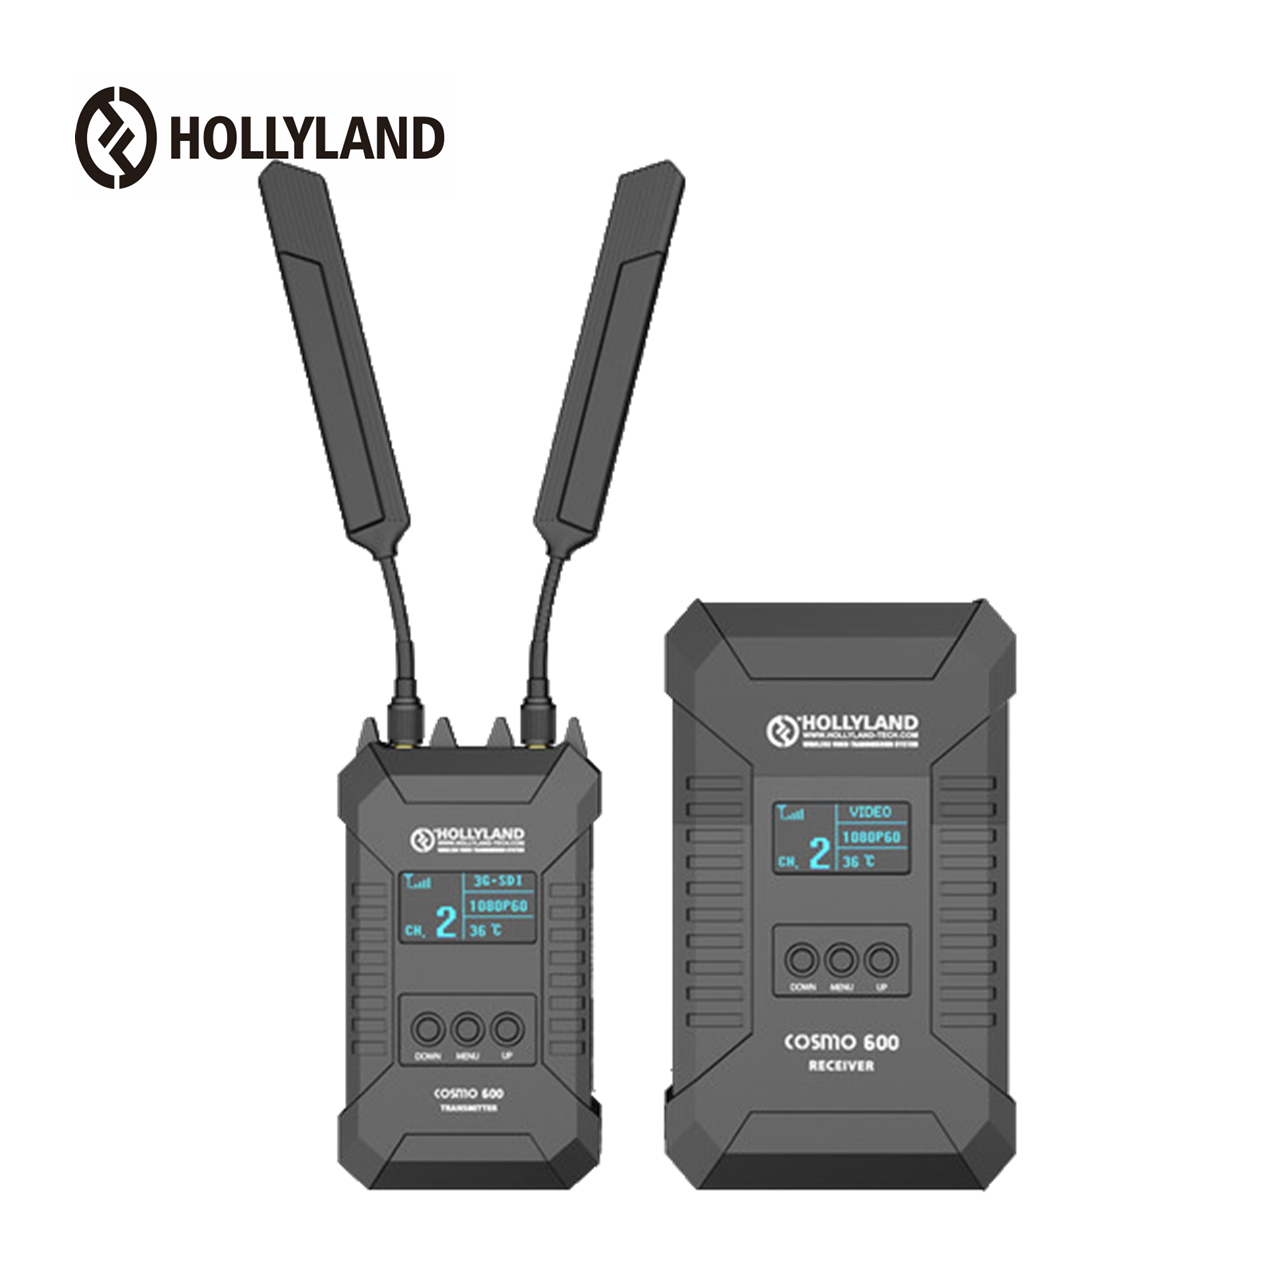 Hollyland Cosmo 600 Wireless HDMI/SDI Transmission System (L-Series) Pro Video Hollyland